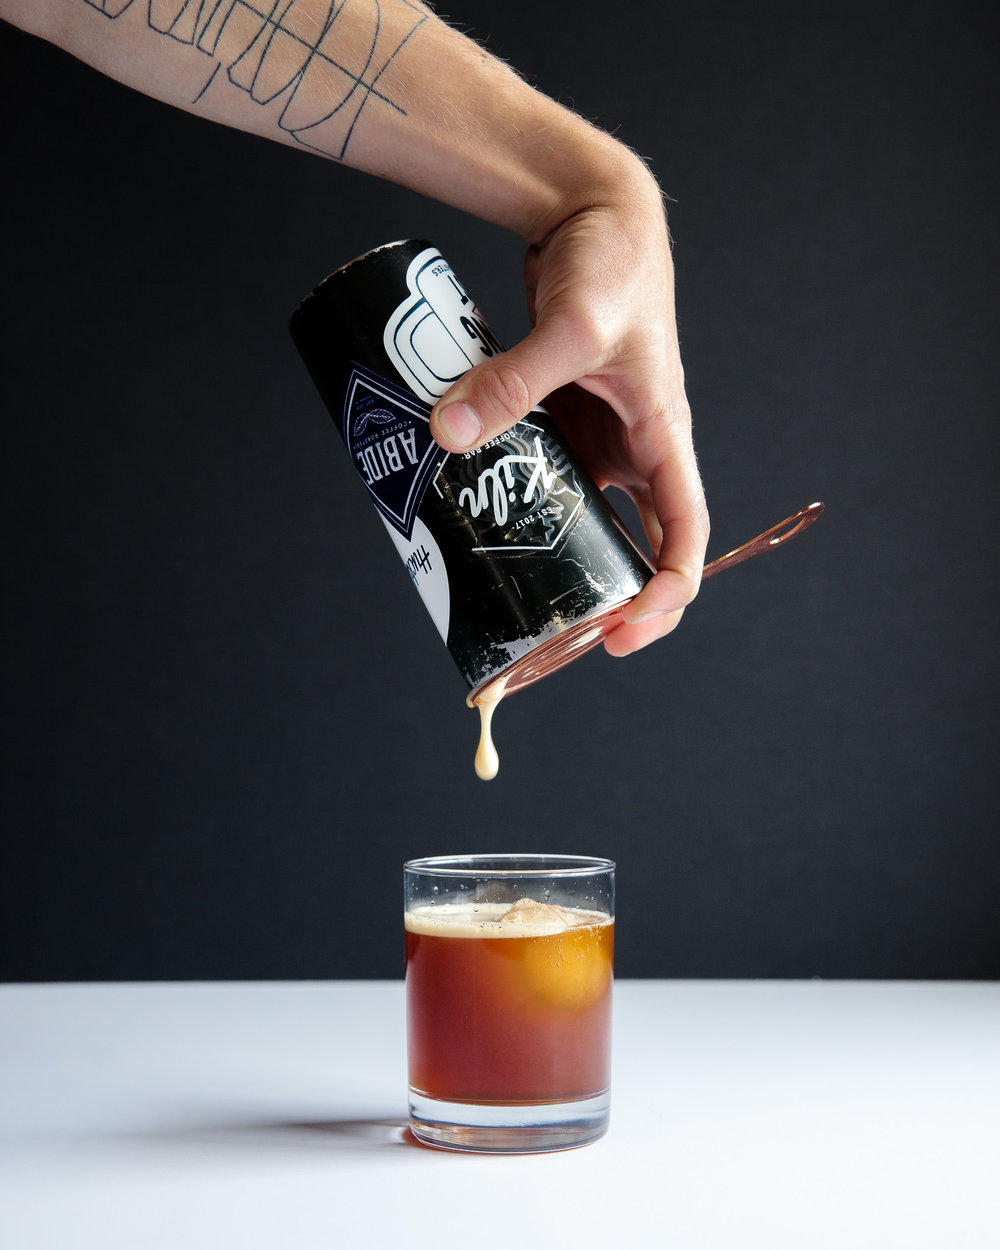 Aerate by shaking cold brew with ice